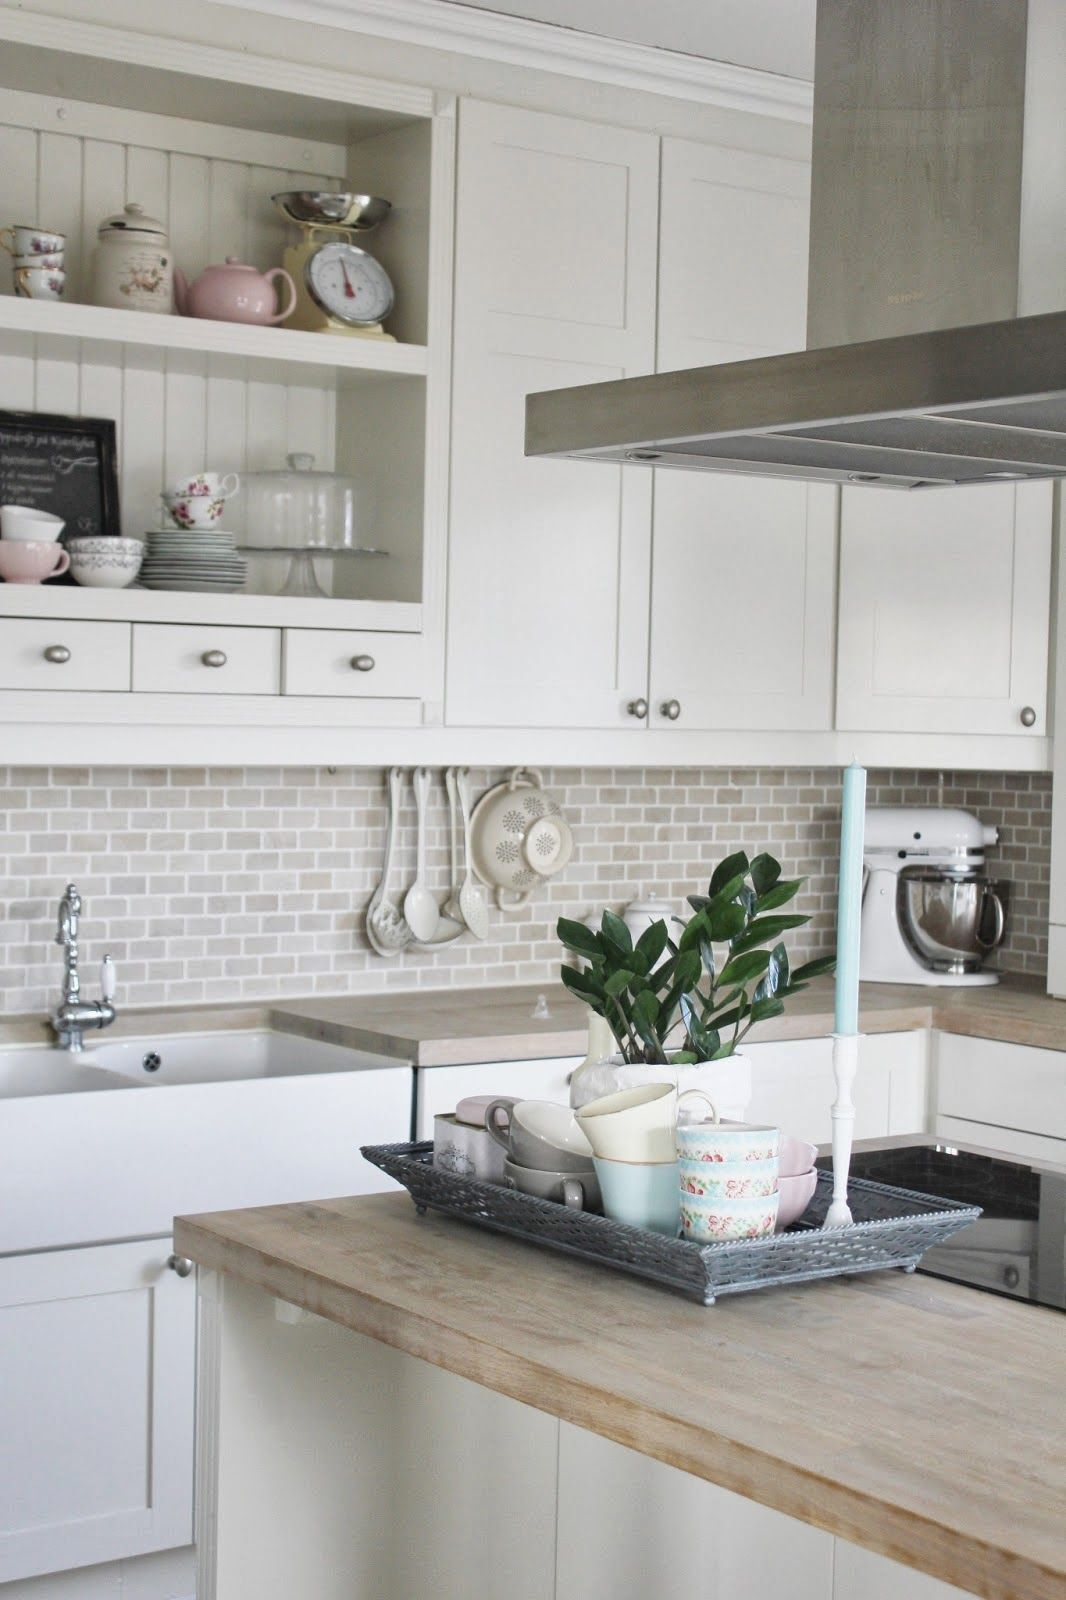 - White Kitchen, Mini Subway Tile, Wood Counters - Both Modern And